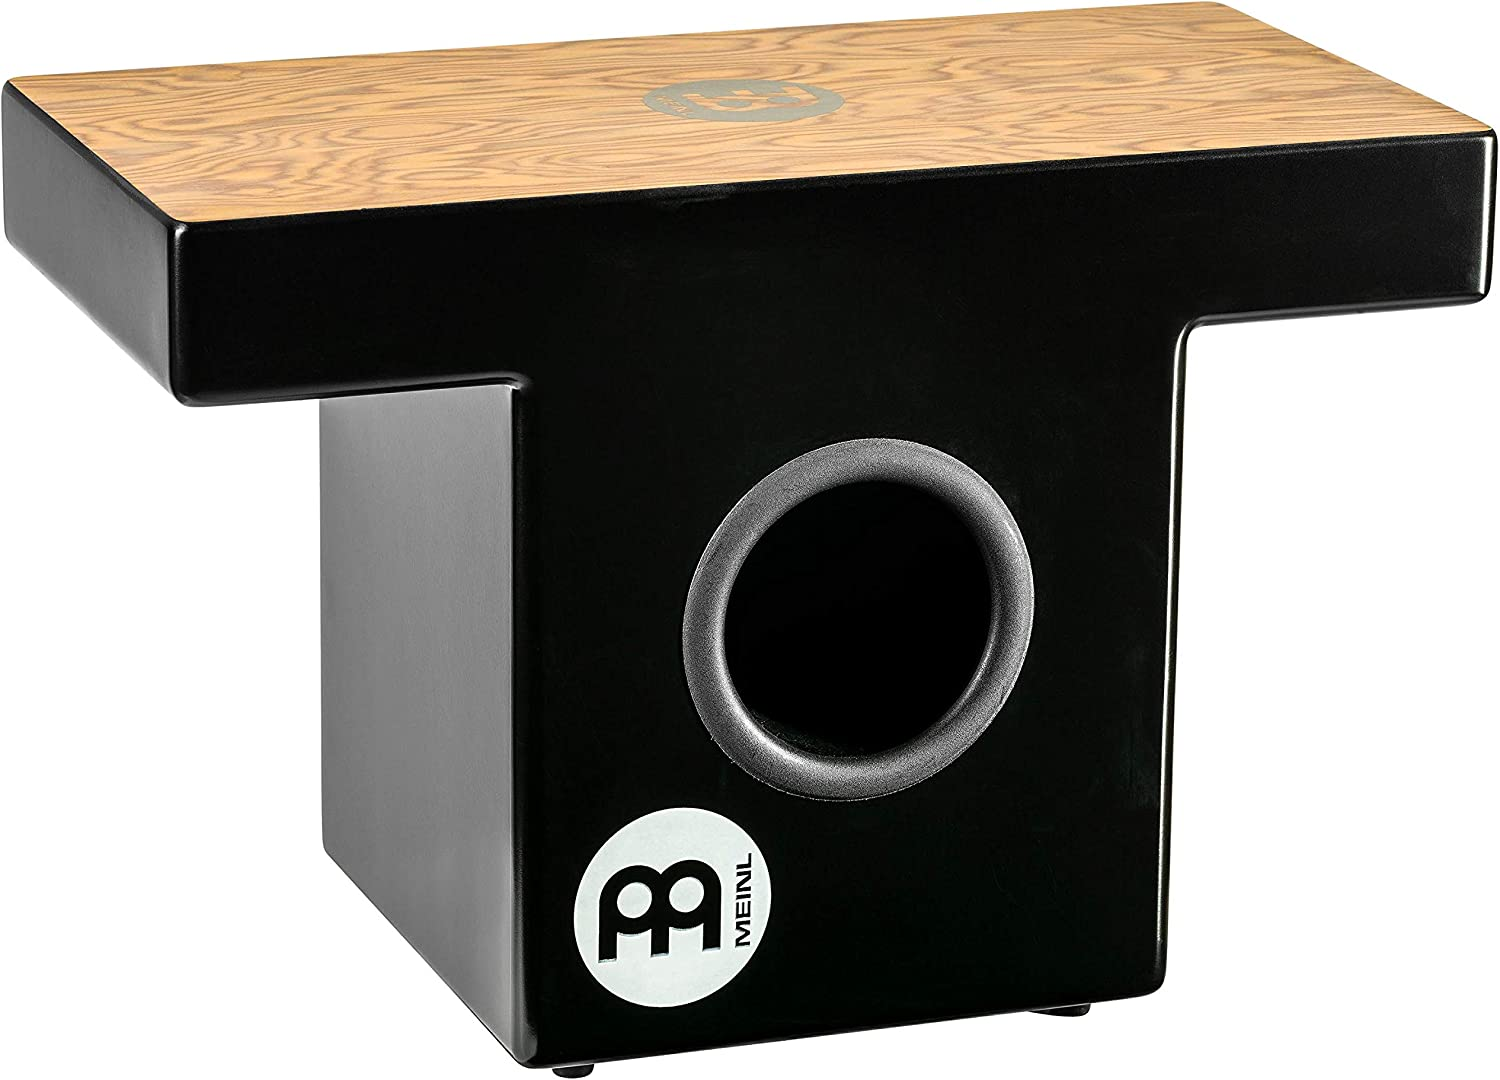 Meinl Slaptop Cajon Box Drum with Internal Snares and Forward Projecting Sound Ports - NOT MADE IN CHINA - Makah Burl Playing Surface, 2-YEAR WARRANTY (TOPCAJ1MB)